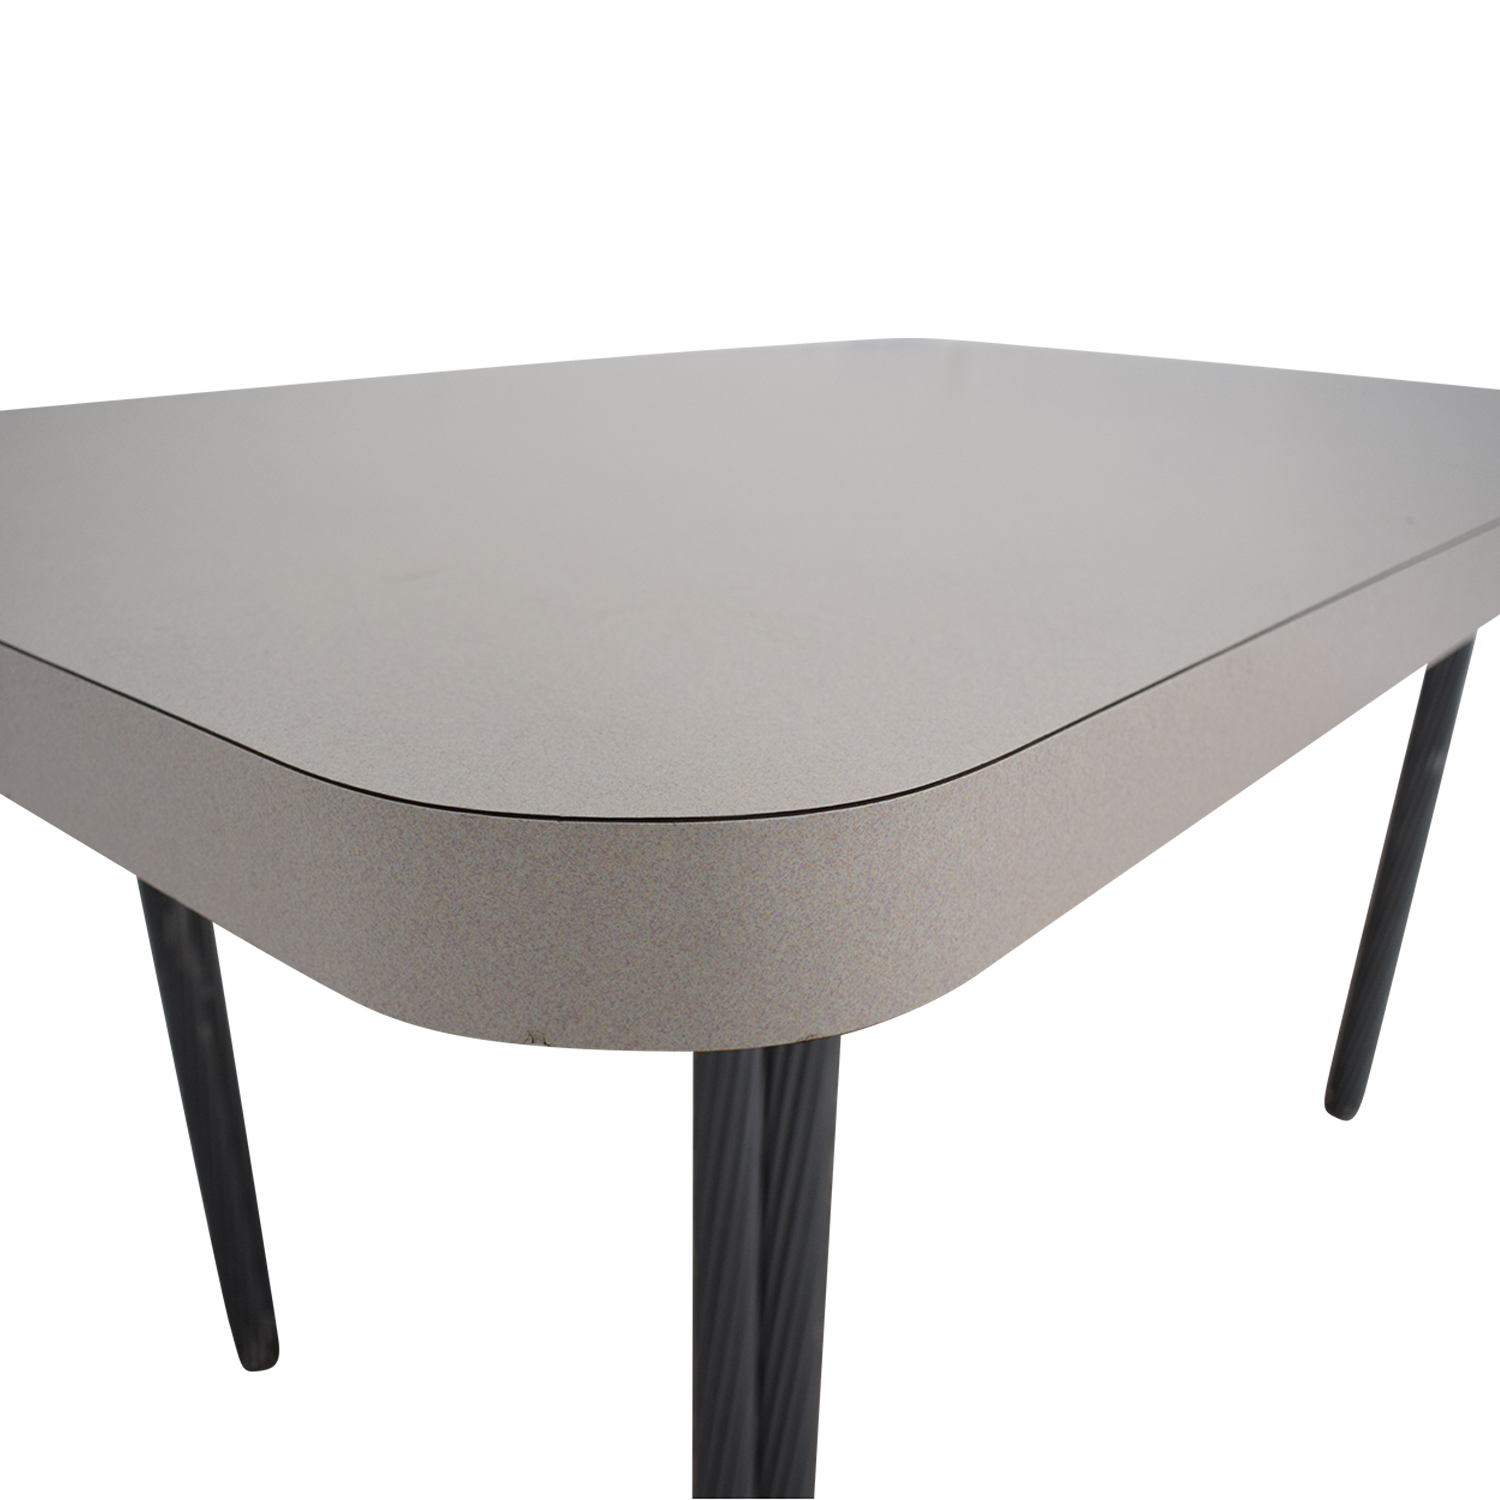 White Dining Table price